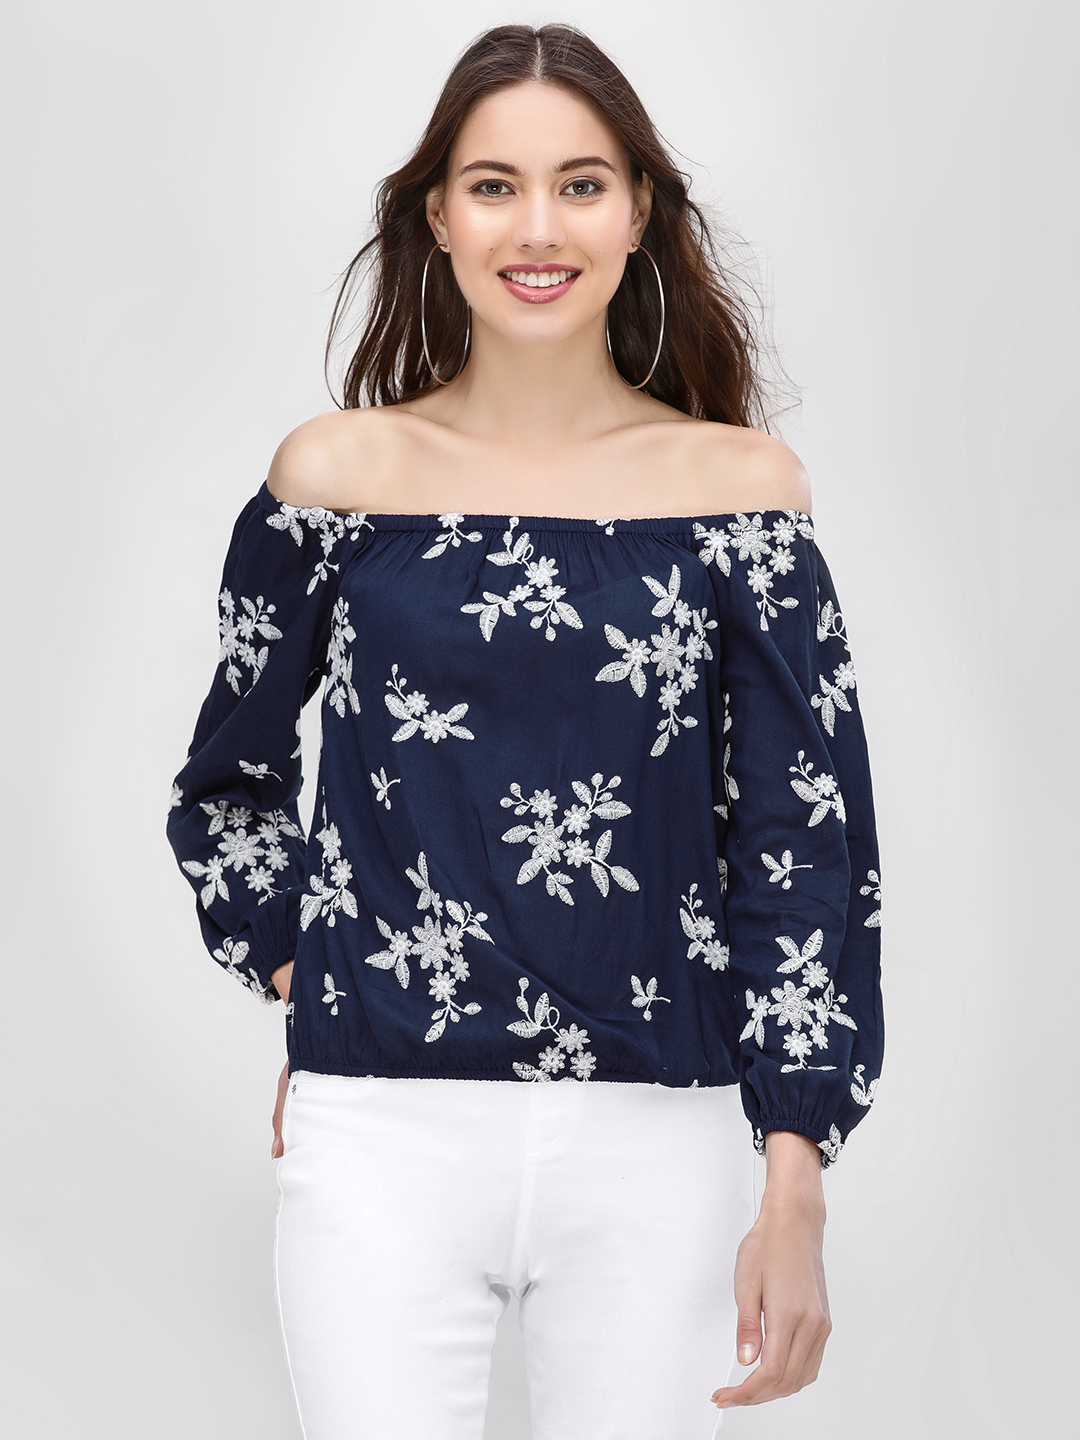 Kisscoast Navy Floral Embroidered Off-Shoulder Blouse 1